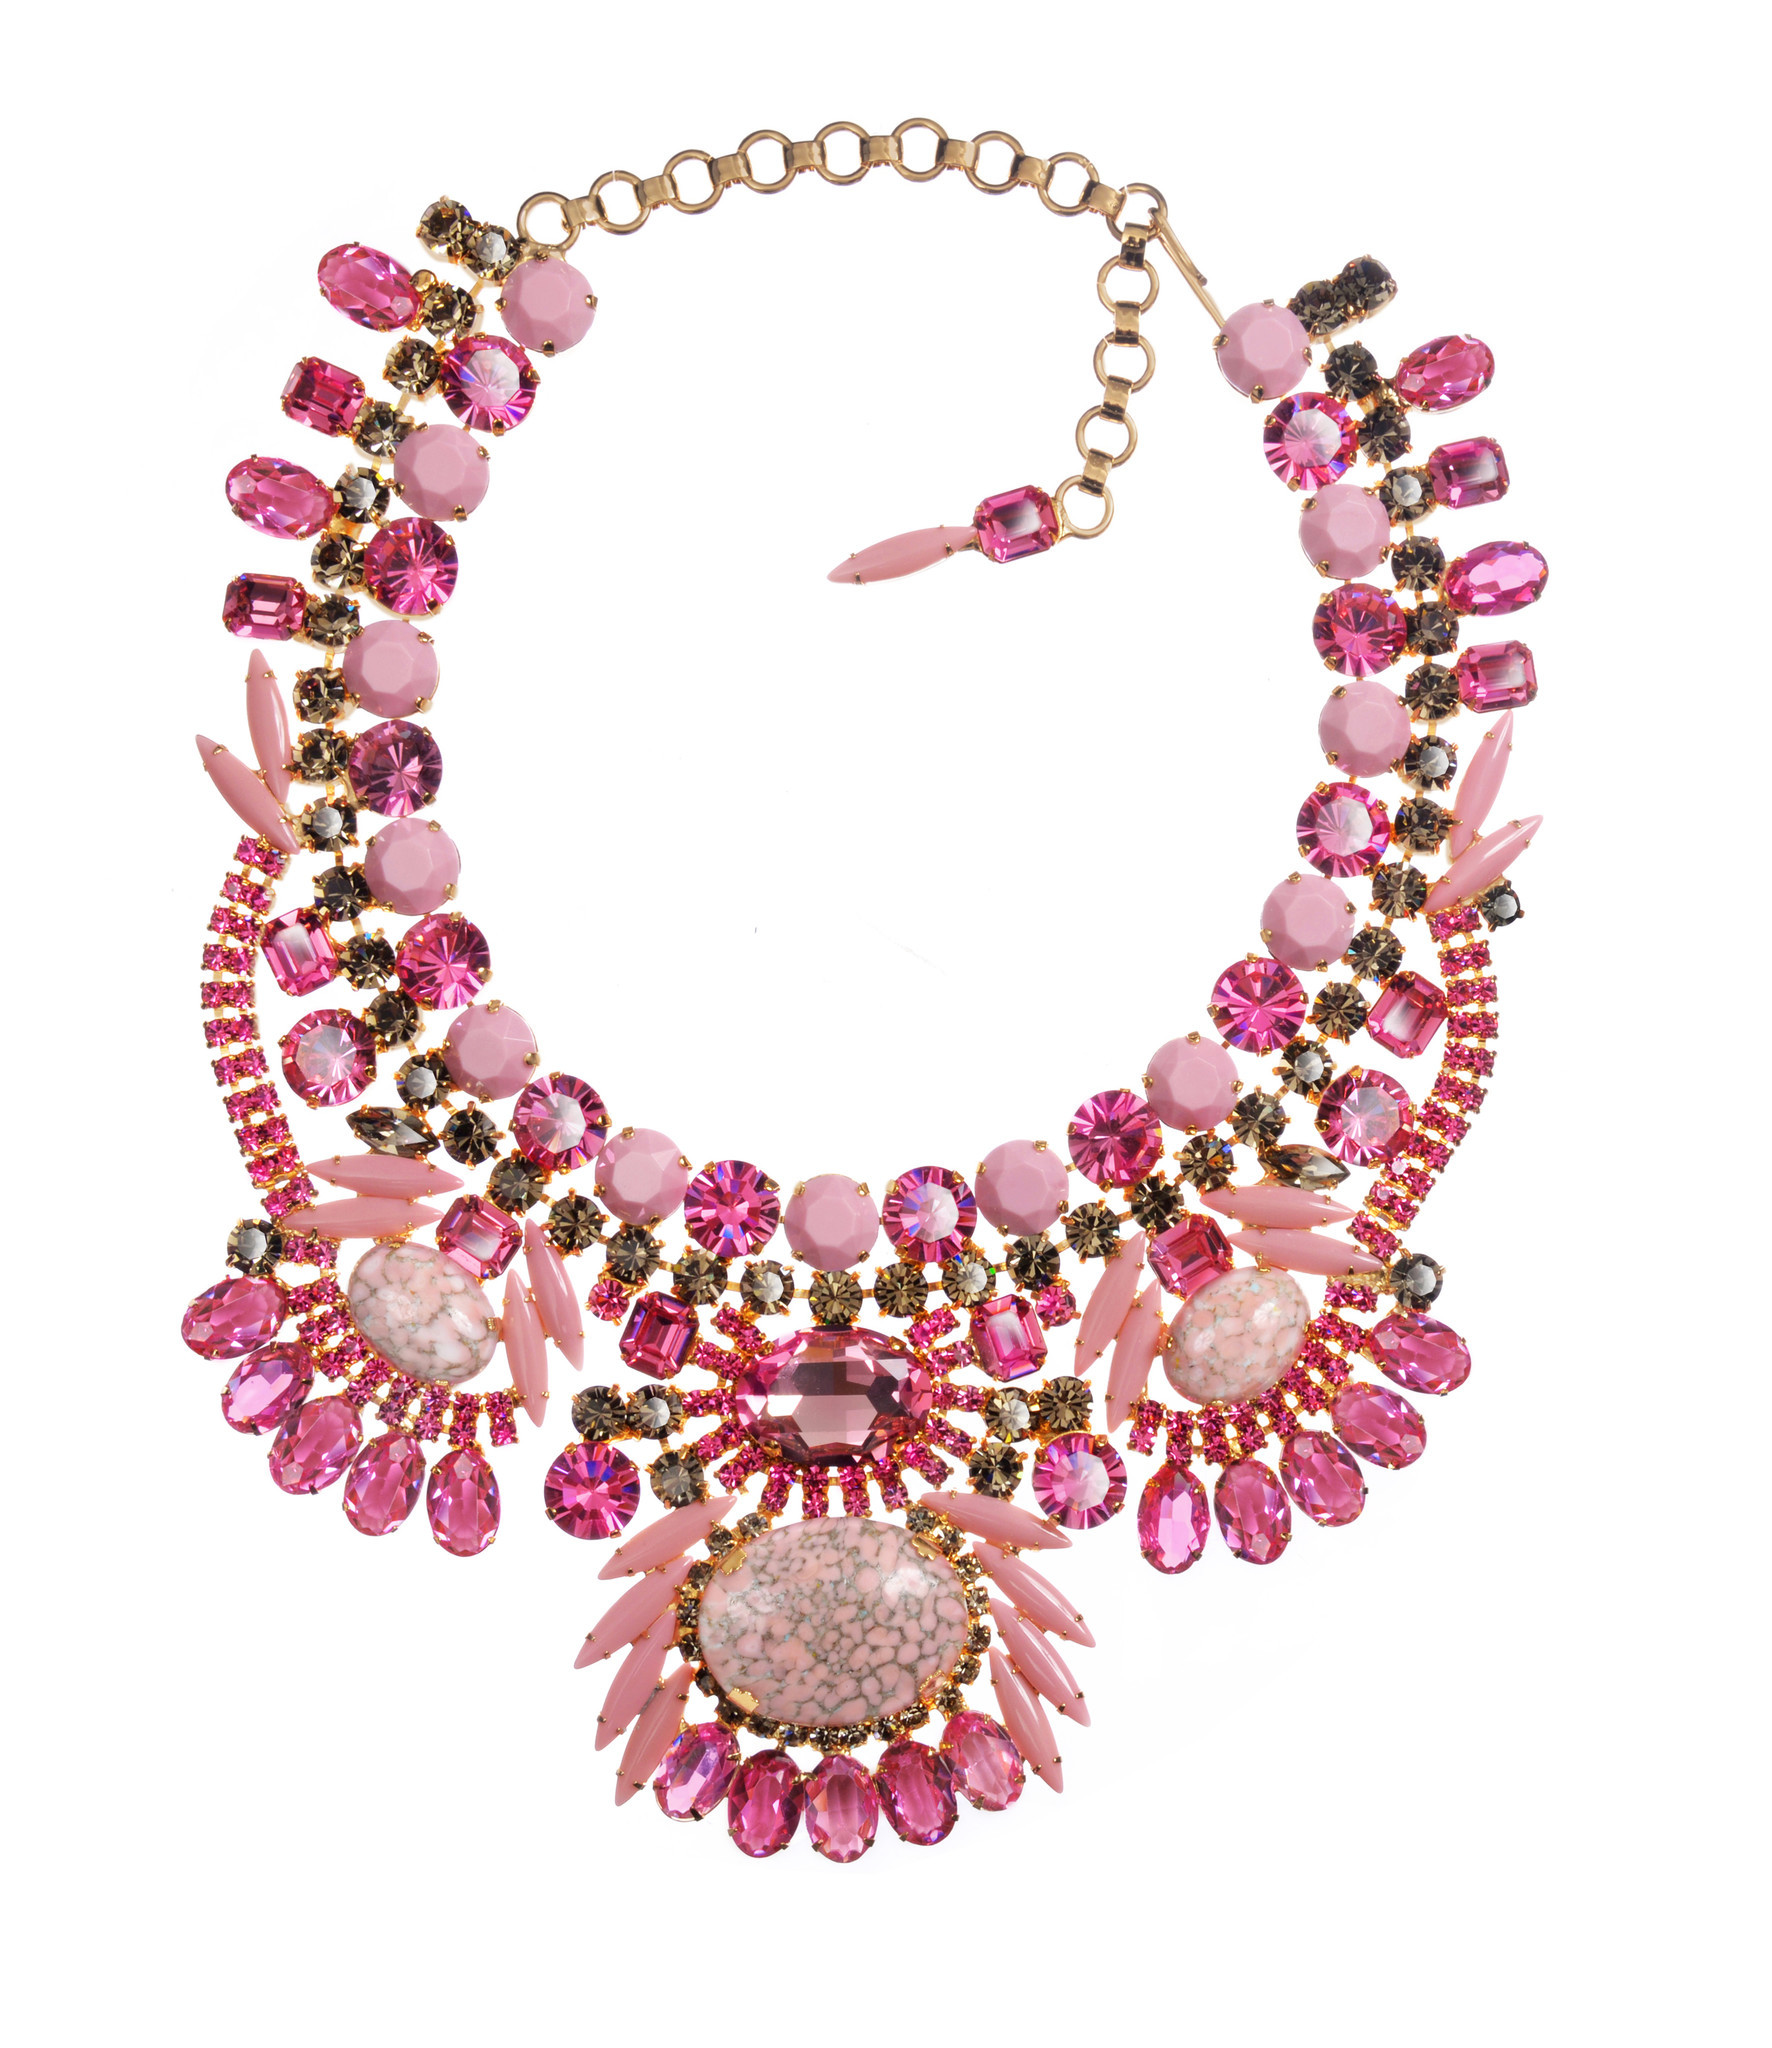 Brilliant colors are a signature of the jewelry line from Canadian Alan Anderson